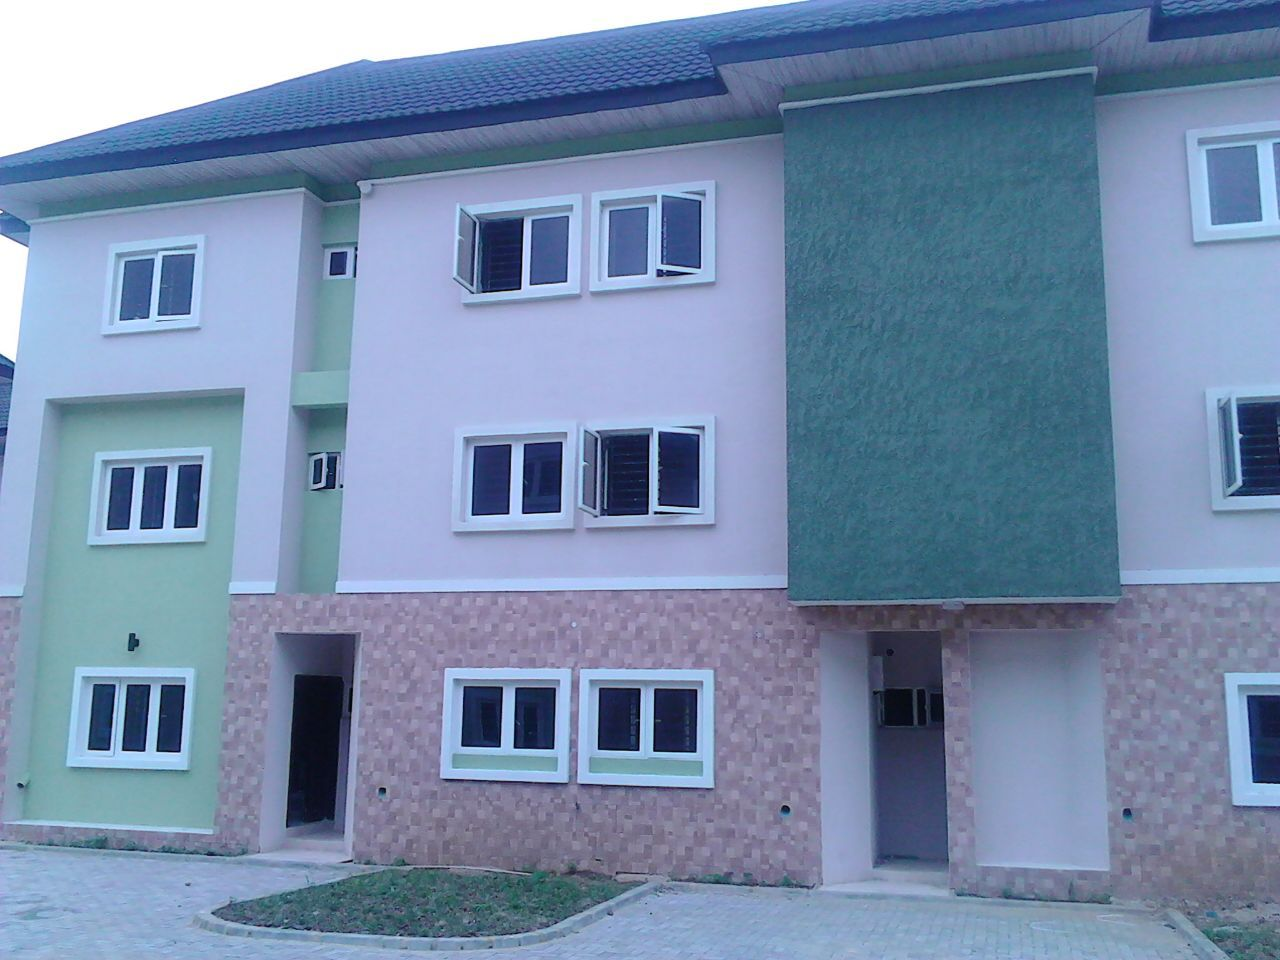 4 bedroom terrace house for sale in a well secured gated community with provision for 24hours alternative power supply at Willow Greens Estate, Off Femi Okunnu, Lekki  Click on the image for full details  #realestate #property #terrace #forsale #Lekki #Lagos #Nigeria